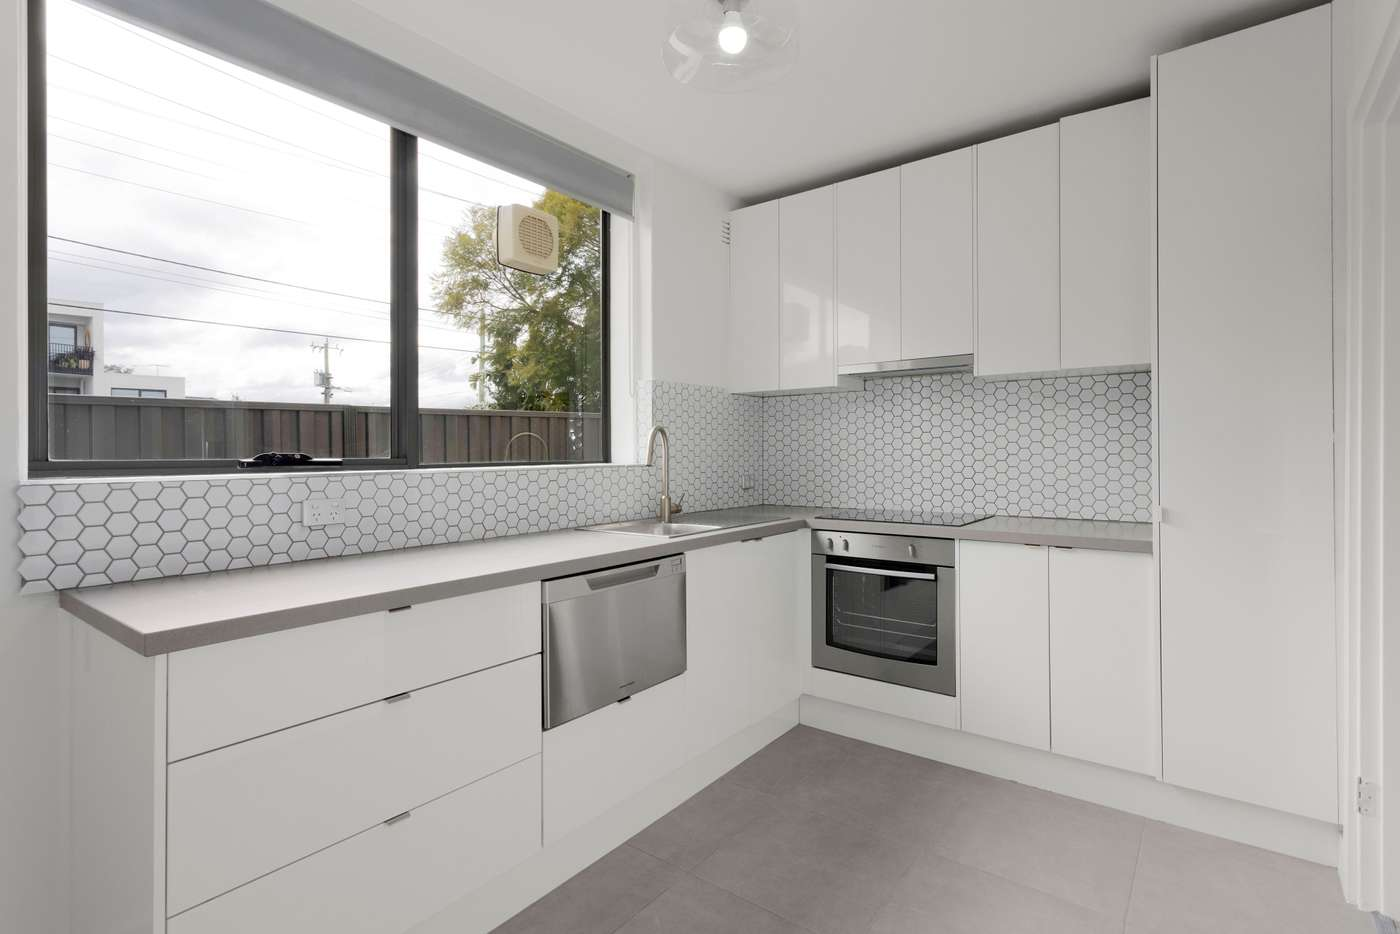 Main view of Homely apartment listing, 4/734 Centre Road, Bentleigh East VIC 3165